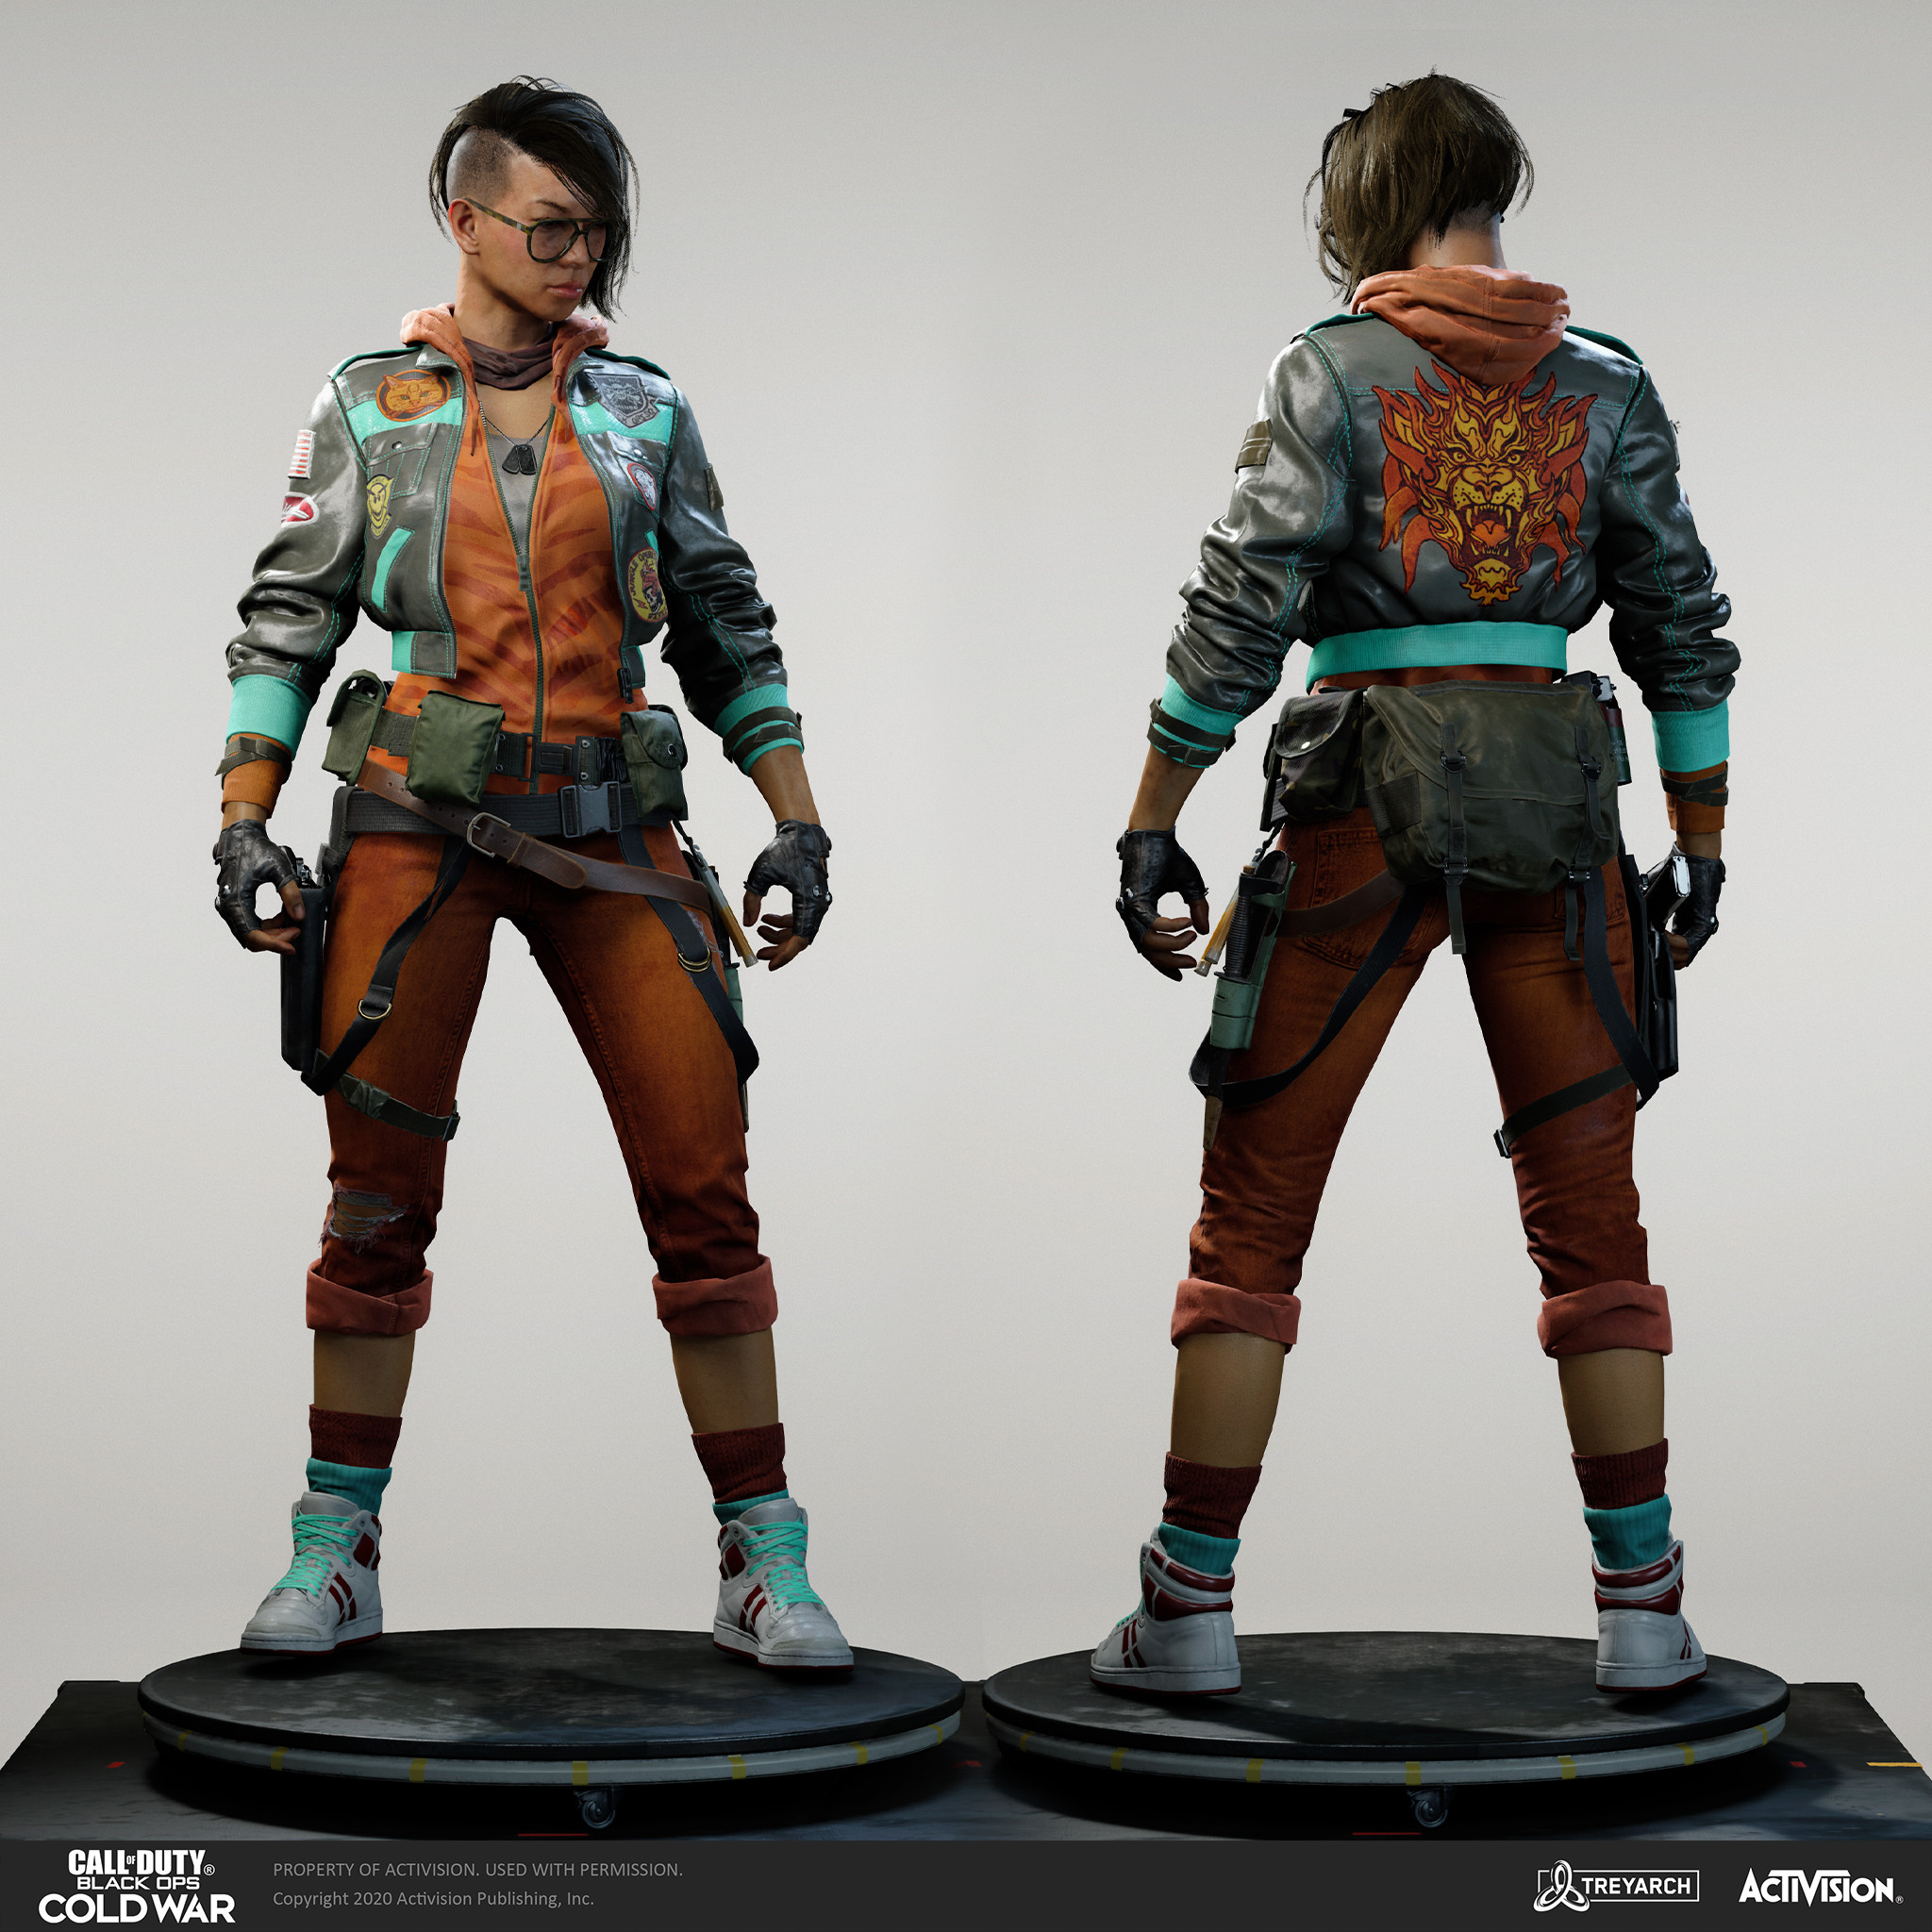 Kwan Song - Tigress. I was responsible for design, mesh assembly, and textures/materials. Individual models/bakes used on the character were created by the Treyarch, SHG, Raven, and OS teams. Head and hair model by head team - Scott Wells, Wren Cromwell.